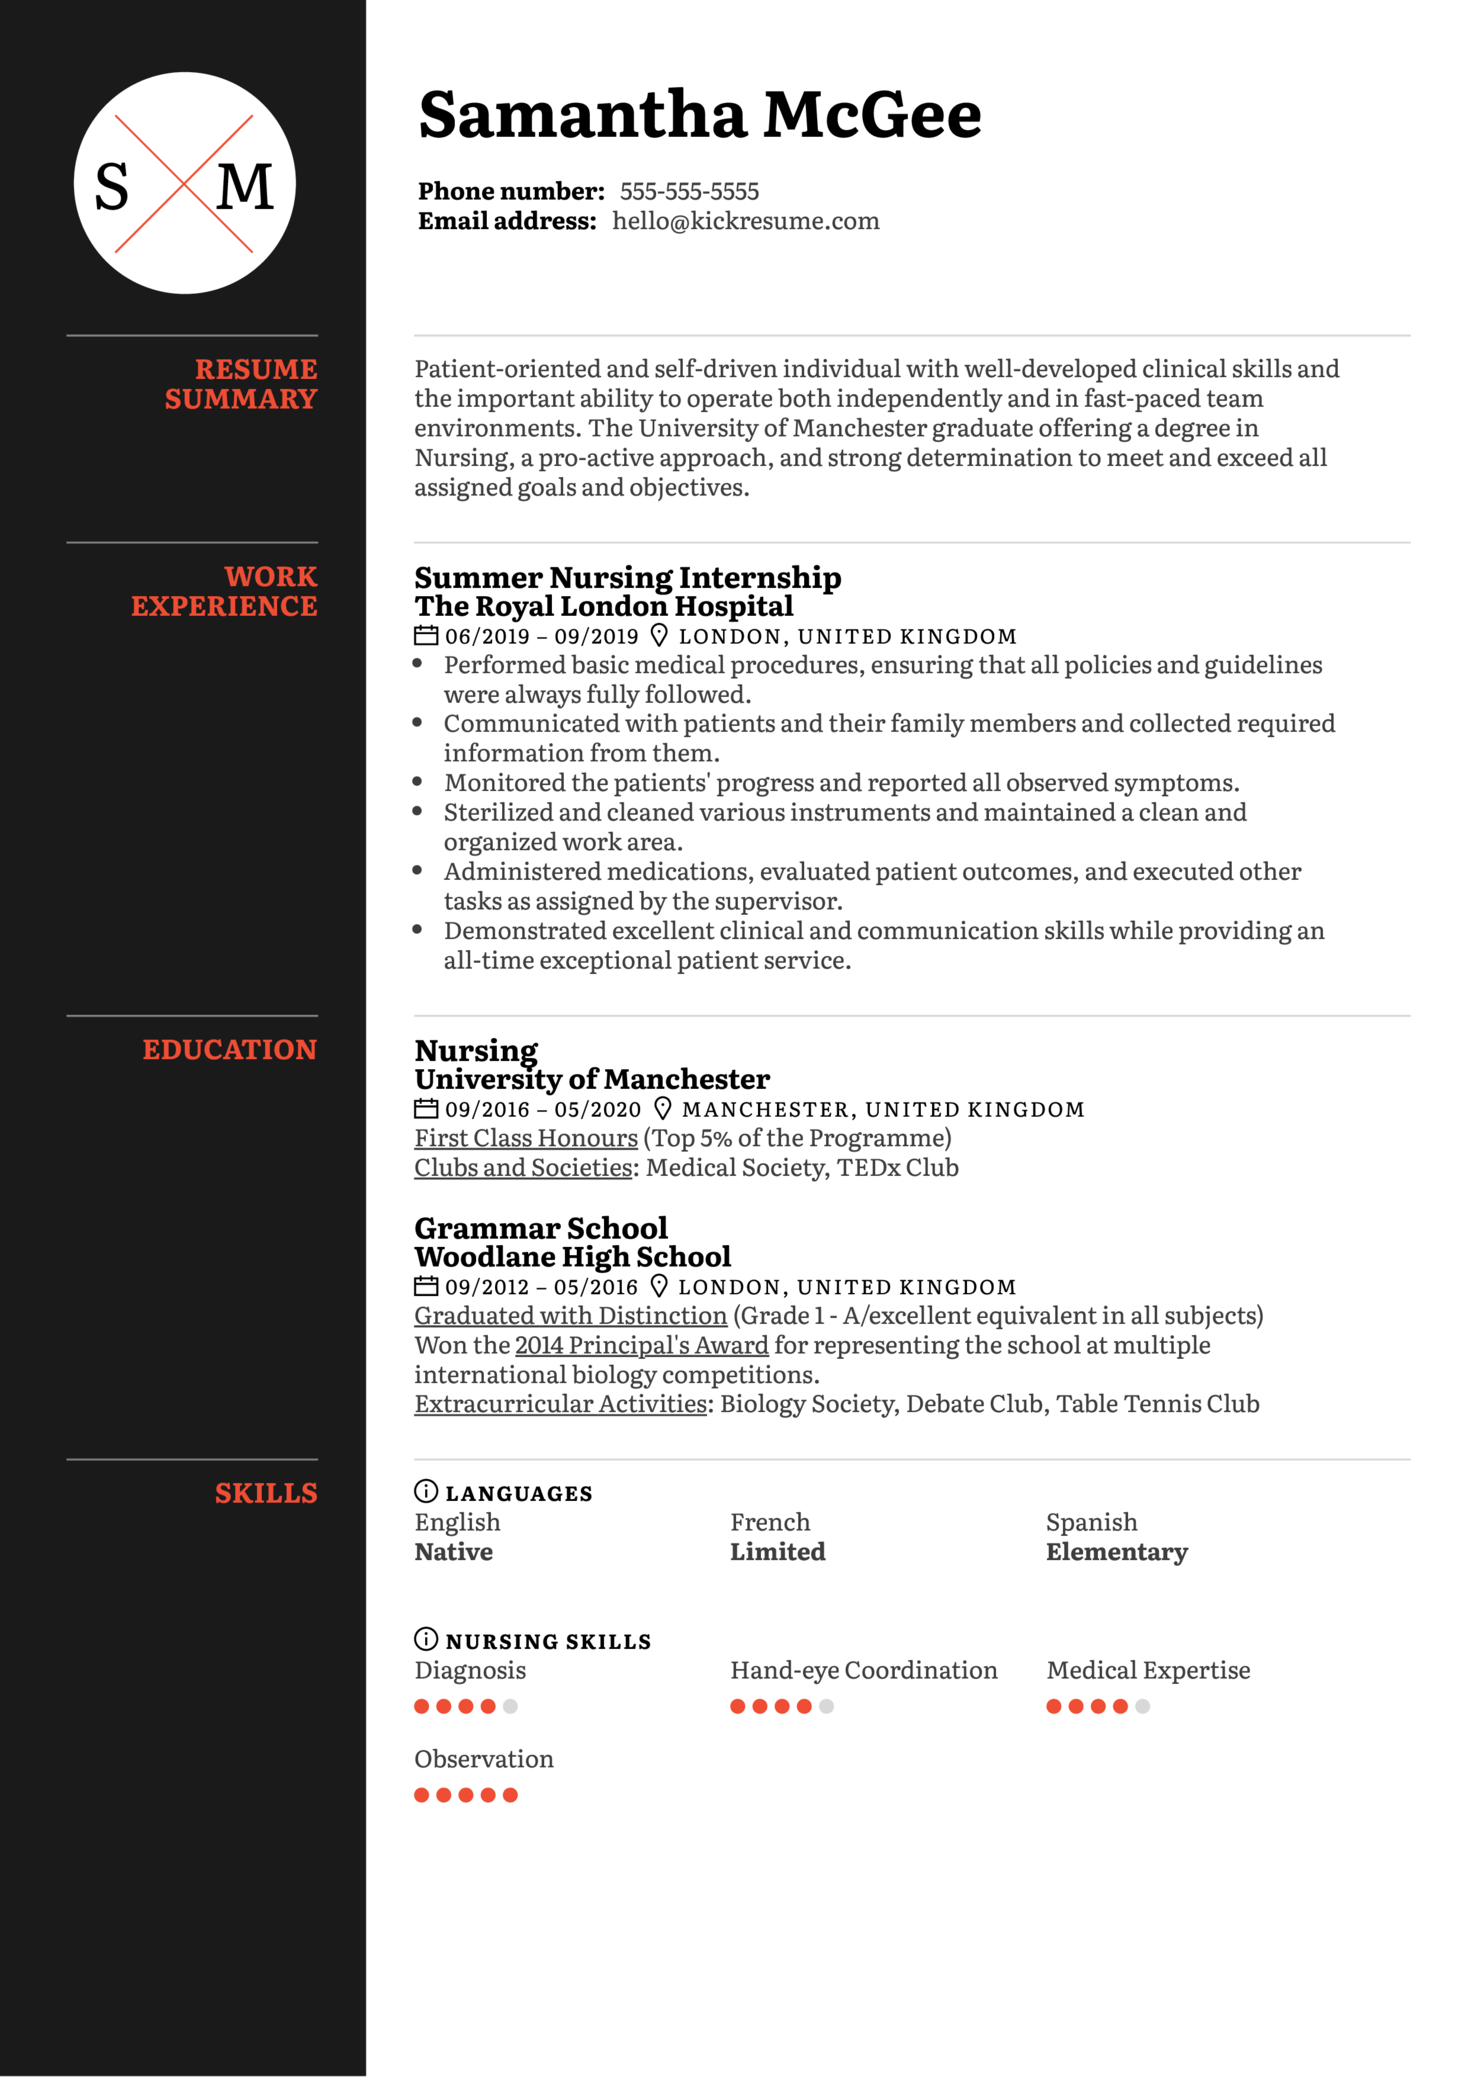 New Grad Nurse Resume Template (časť 1)